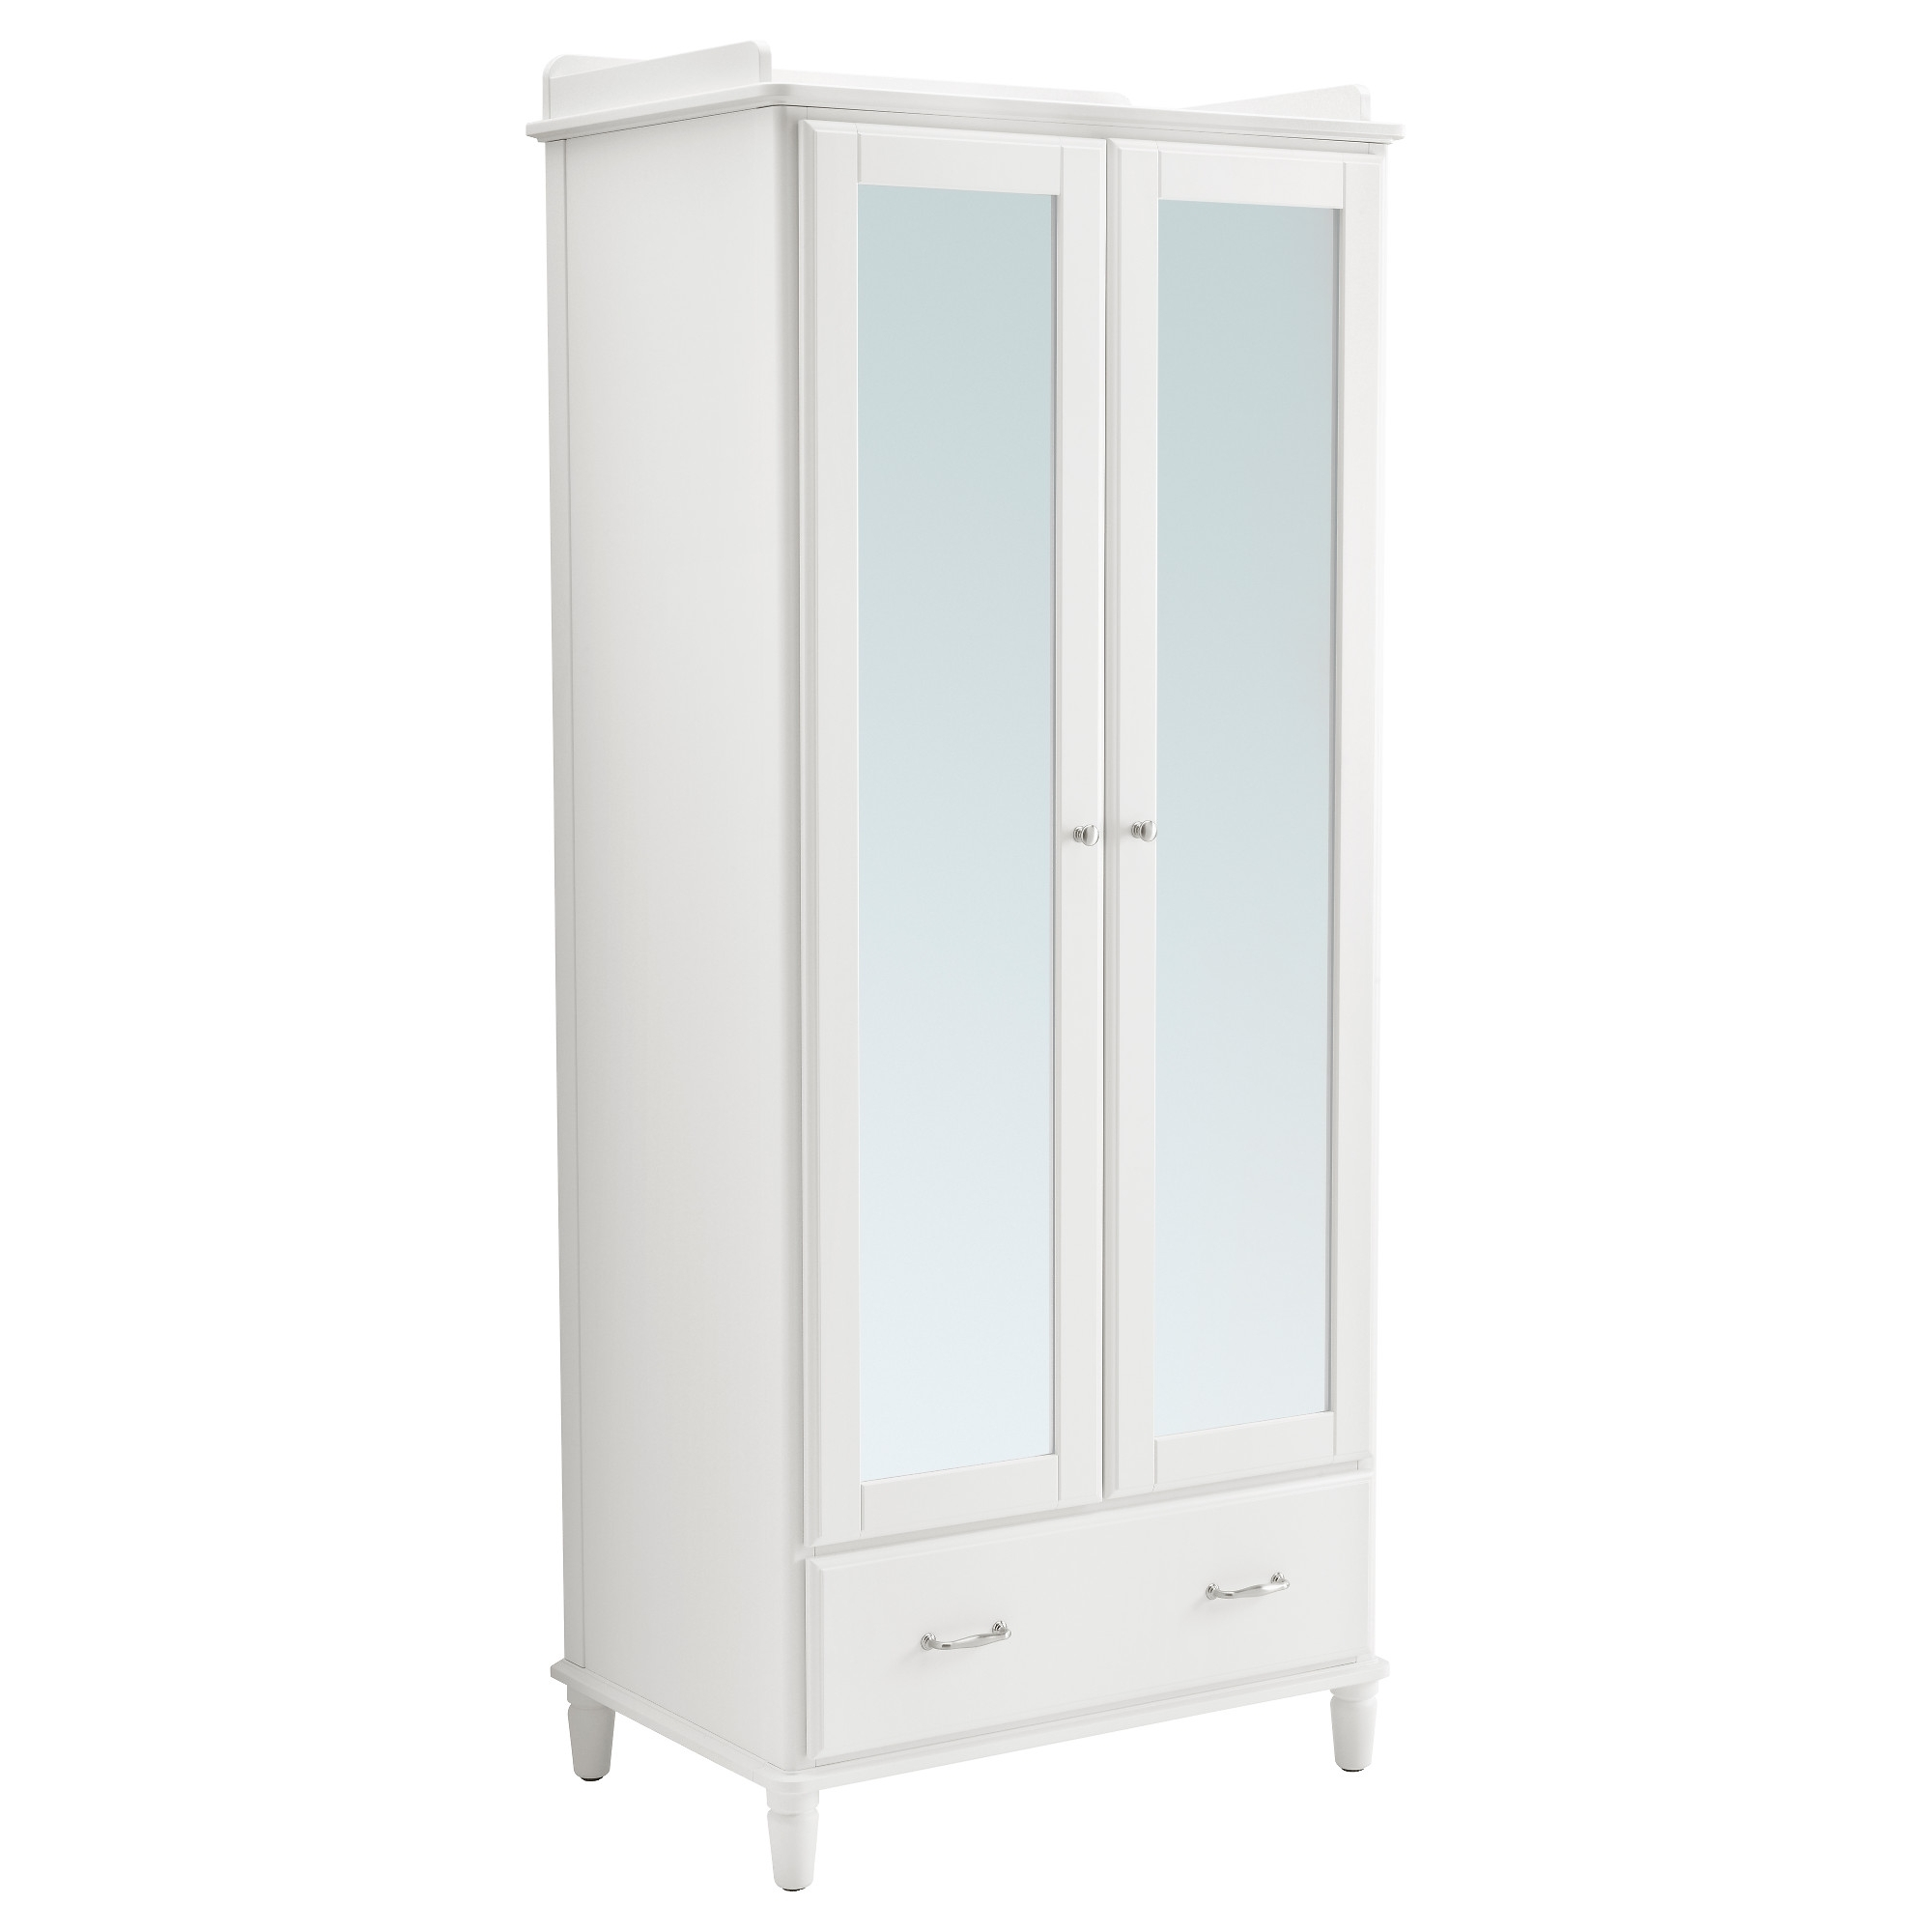 2017 Cheap Wardrobes With Drawers Regarding Free Standing Wardrobes (View 1 of 15)